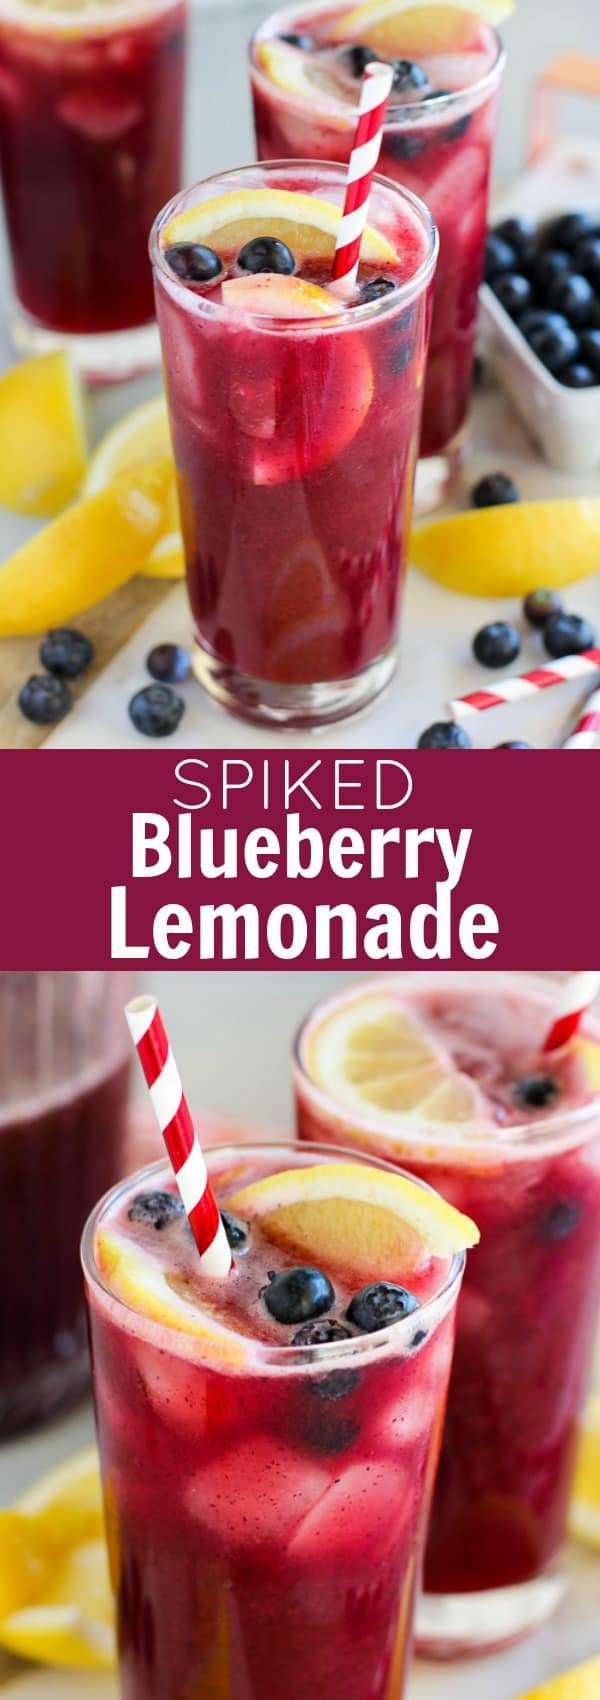 Spiked Blueberry Lemonade - Easy Homemade Blueberry Lemonade spiked with Vodka! Sweet and tart, cold and refreshing - the perfect cocktail for summer!